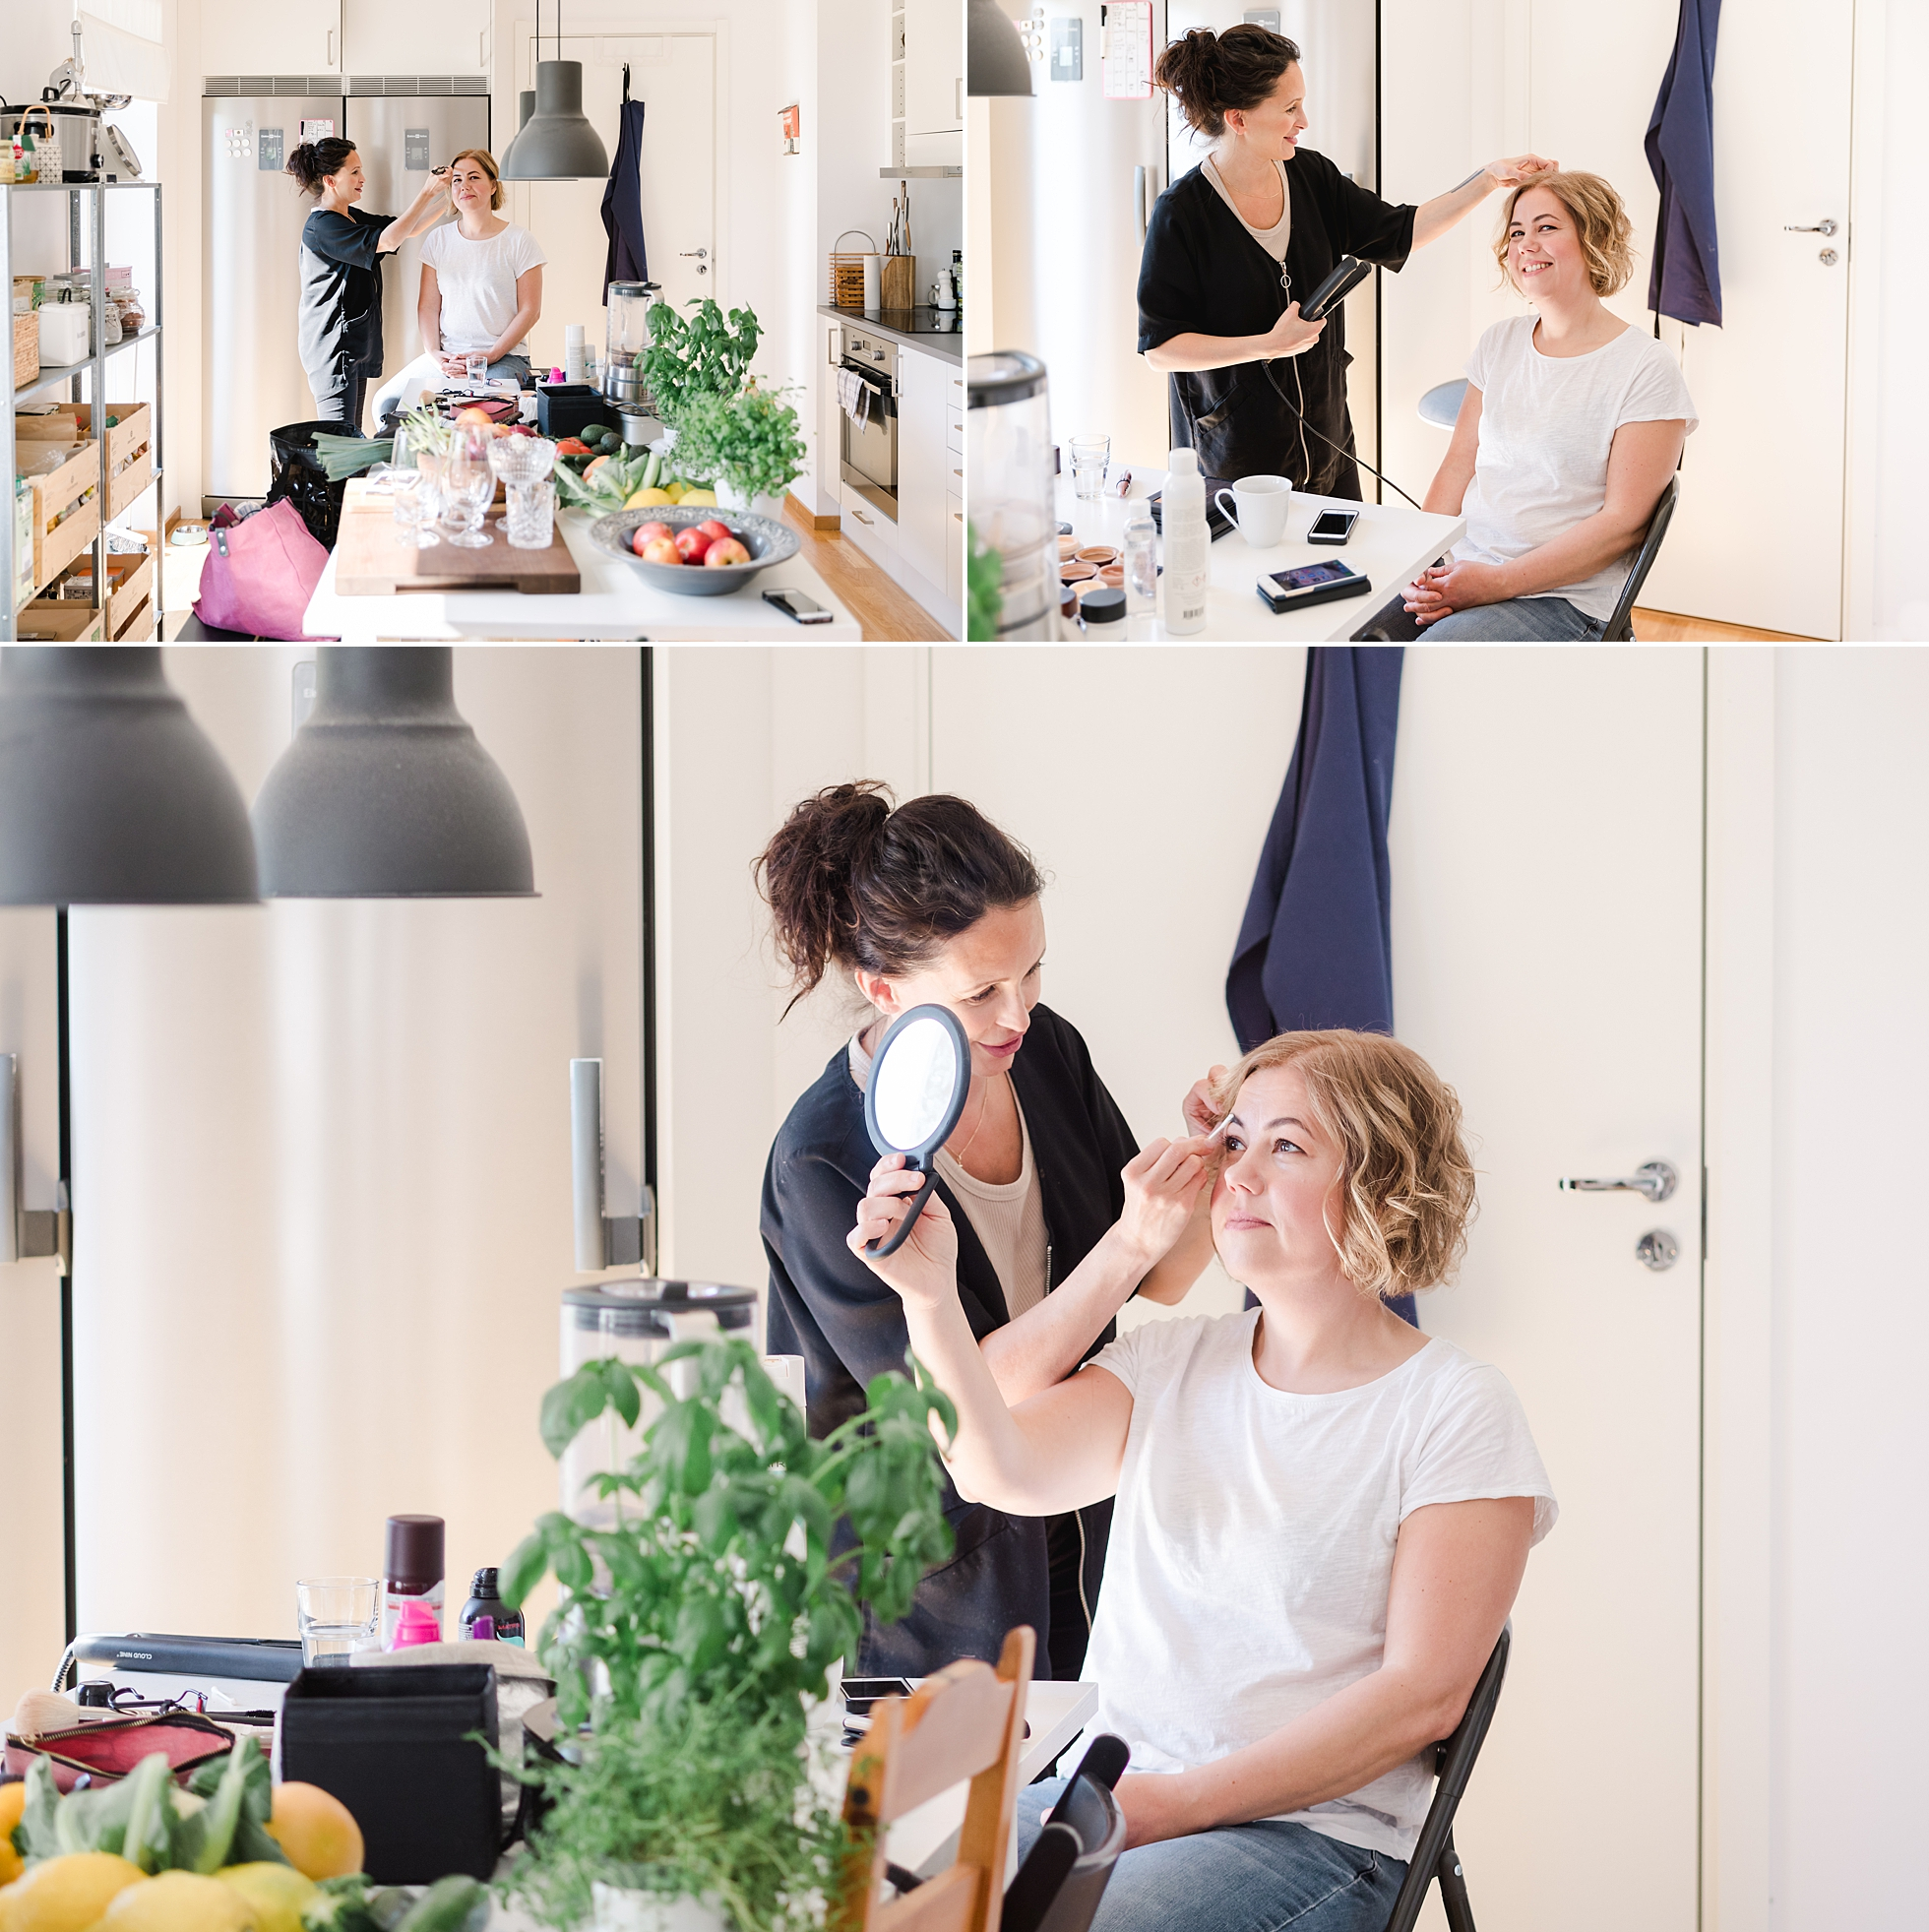 Hair and makeup artist Mia Adam preparations for a brand photo session